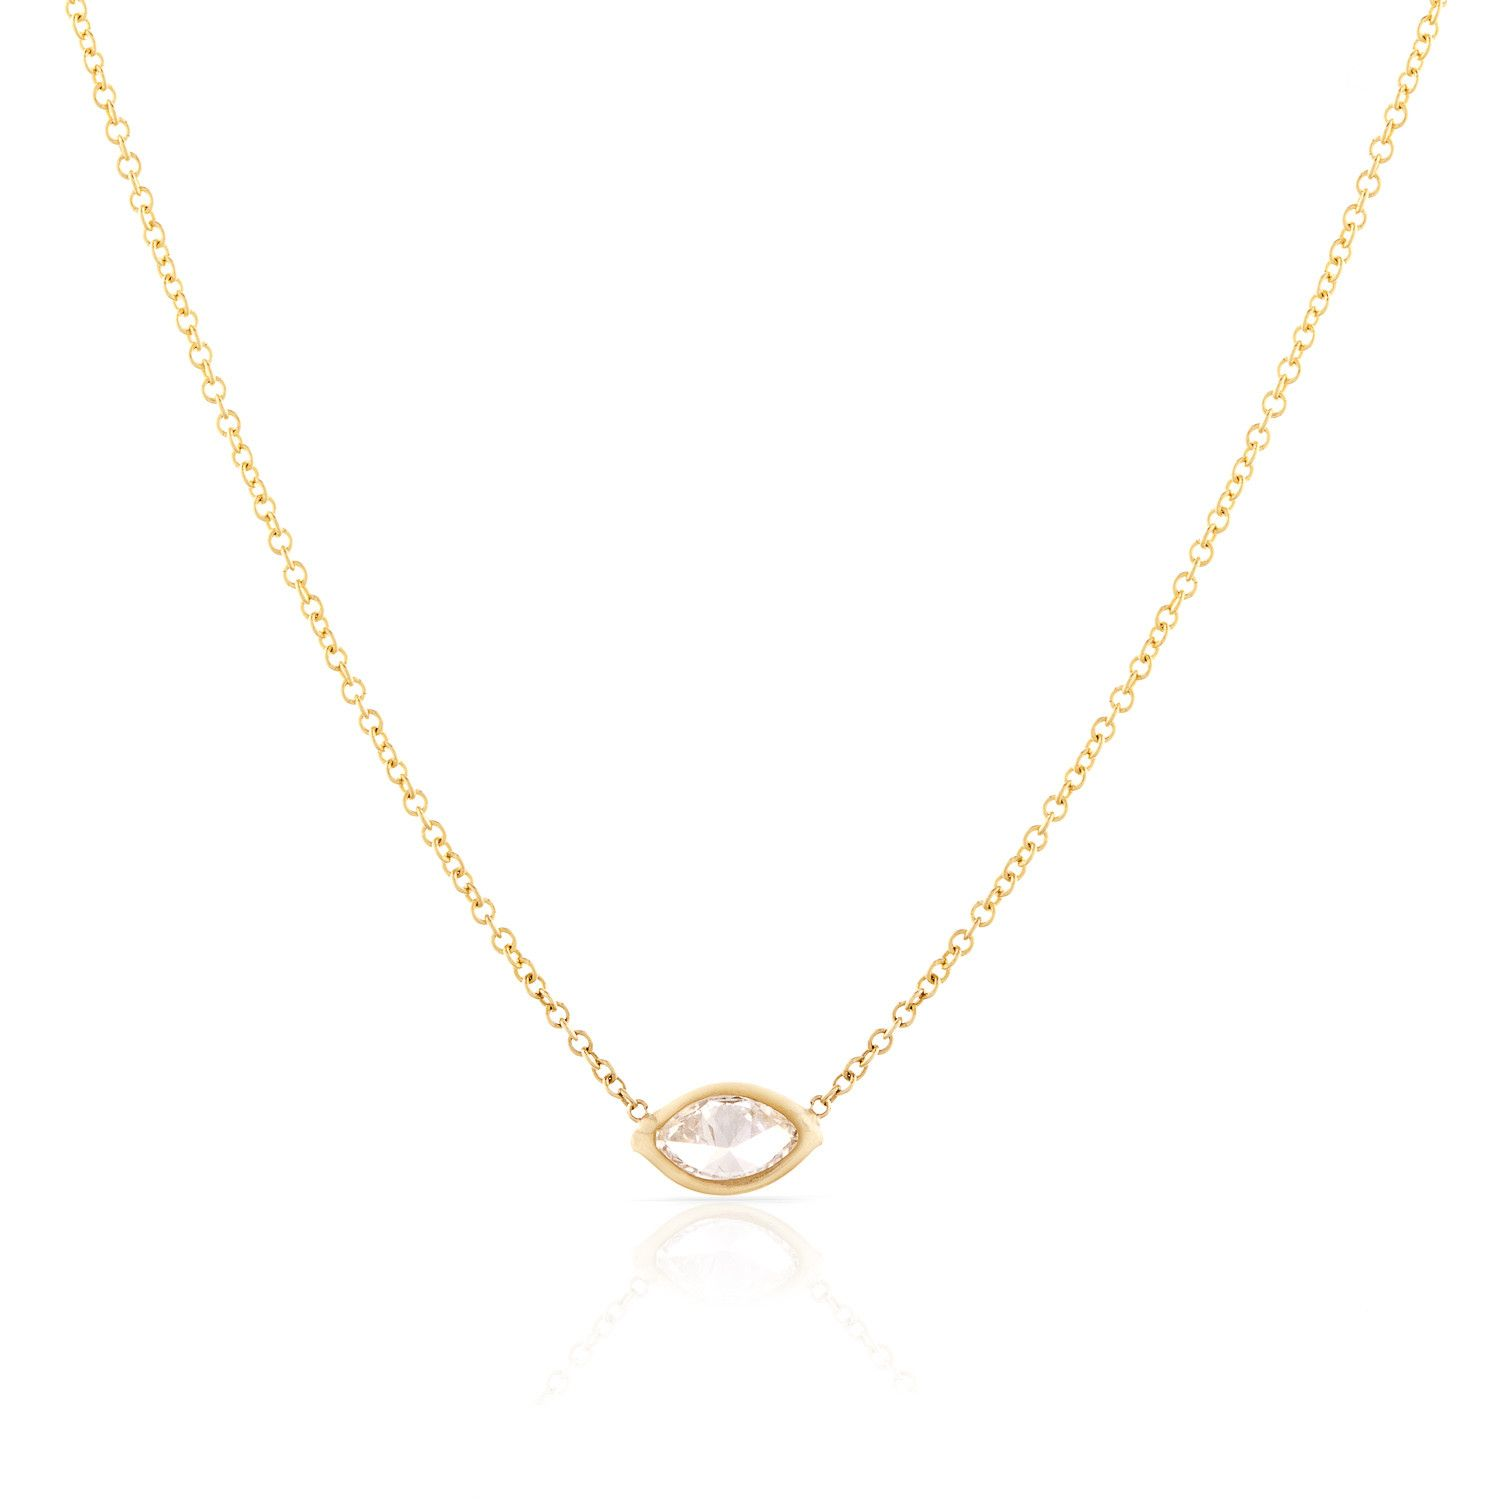 products schweitzer necklace natasha gold mini marquise yellow pendant diamond